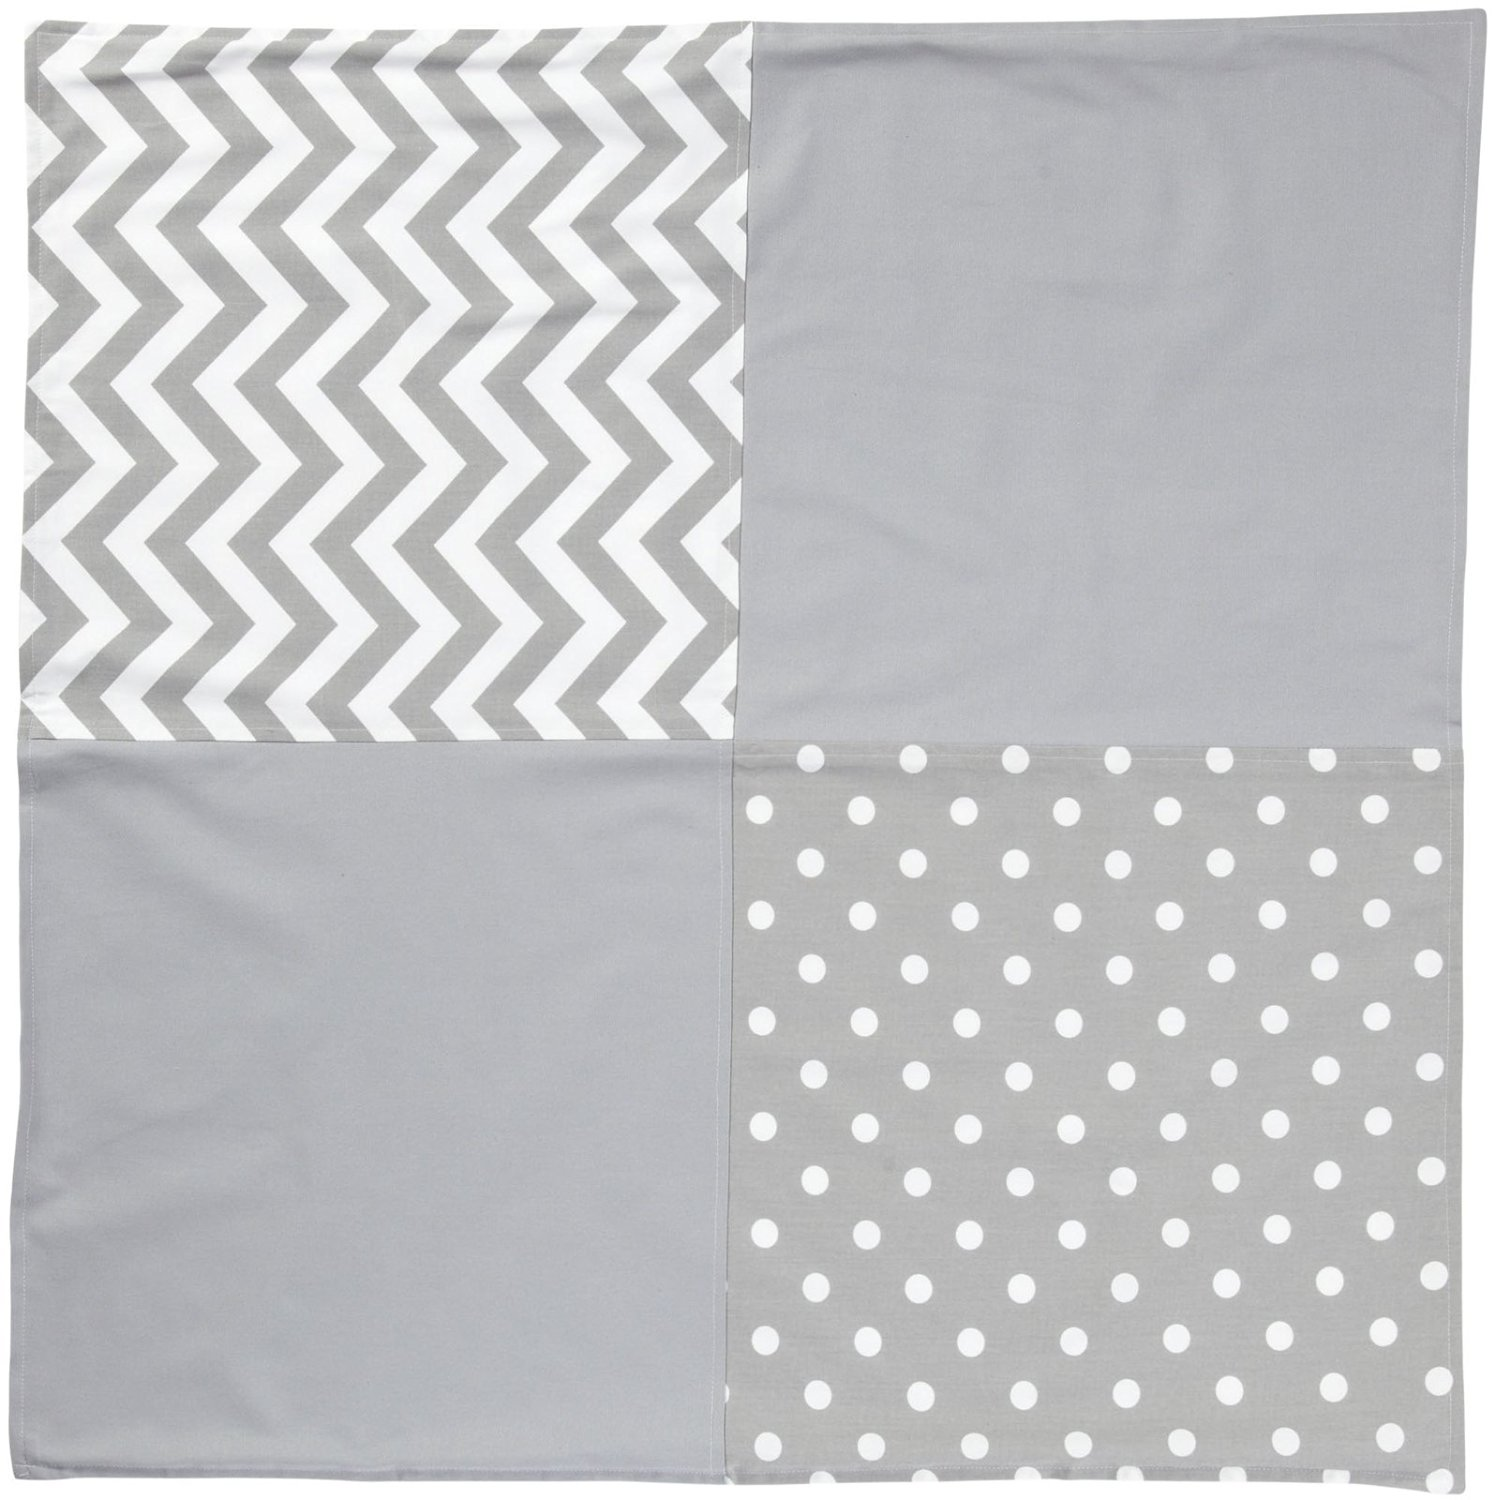 New Arrivals Zig Zag Baby Crib Blanket-White & Gray